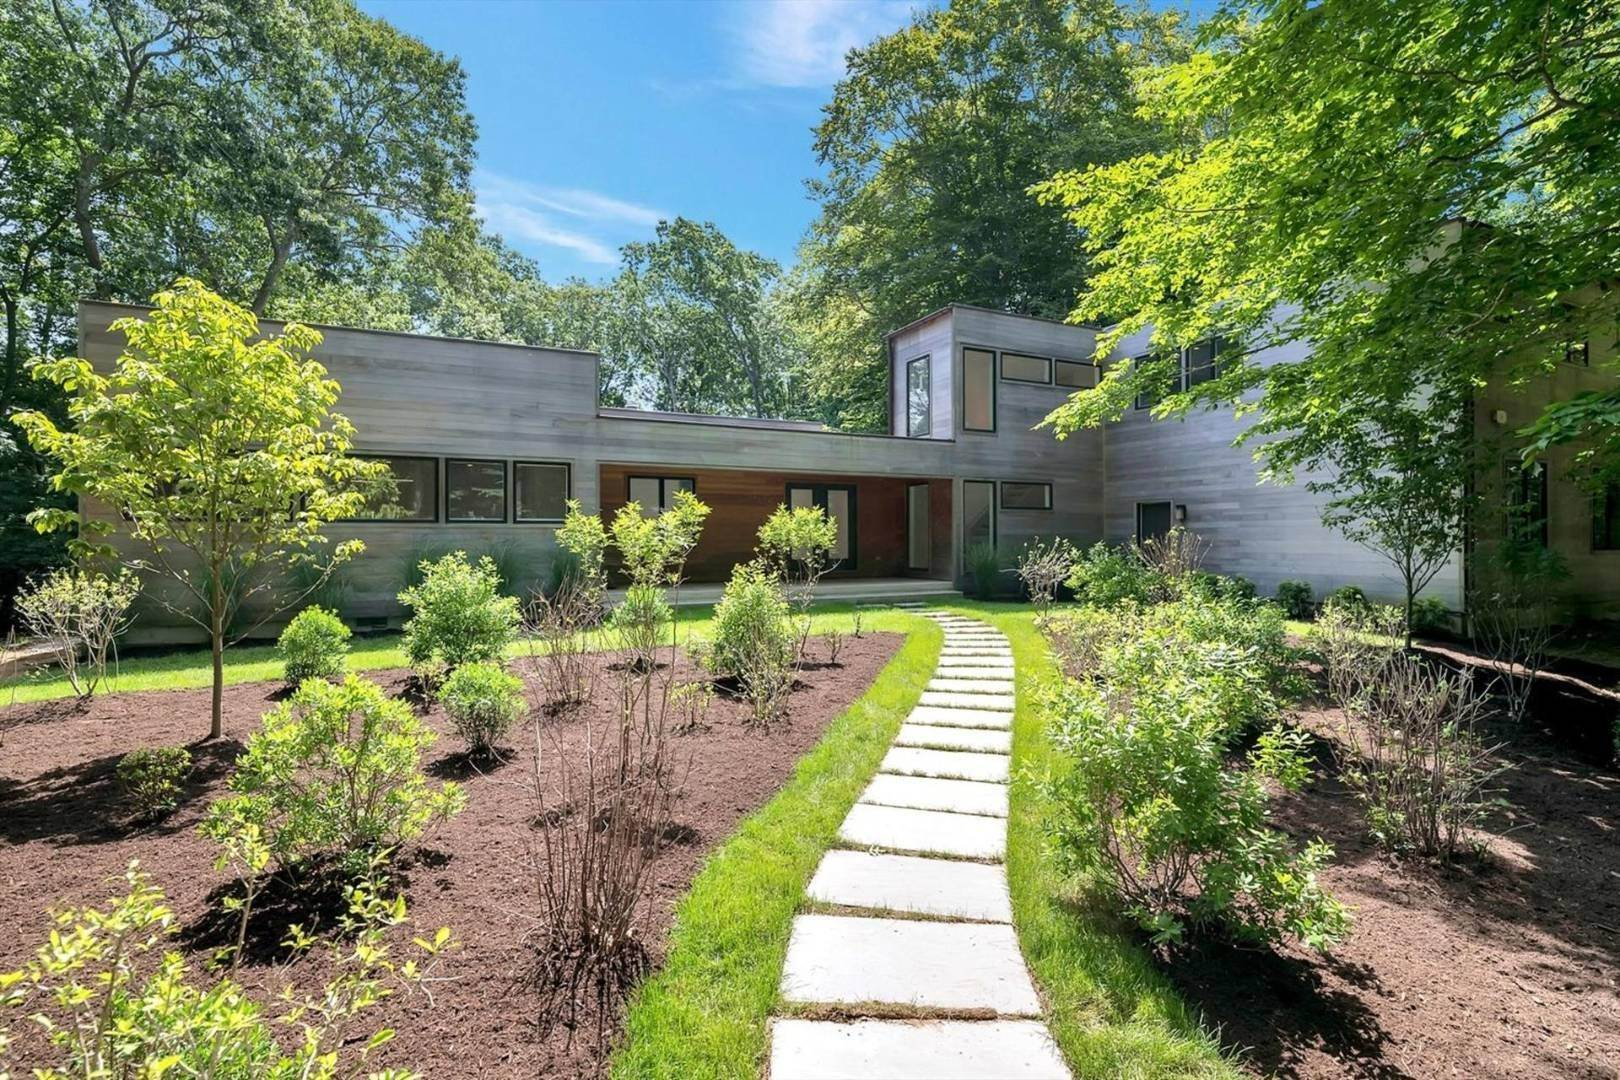 Single Family Home at White, Bright And Beachy Contemporary! Eh Village Fringe Rental! 3 Old Orchard Lane, East Hampton, NY 11937